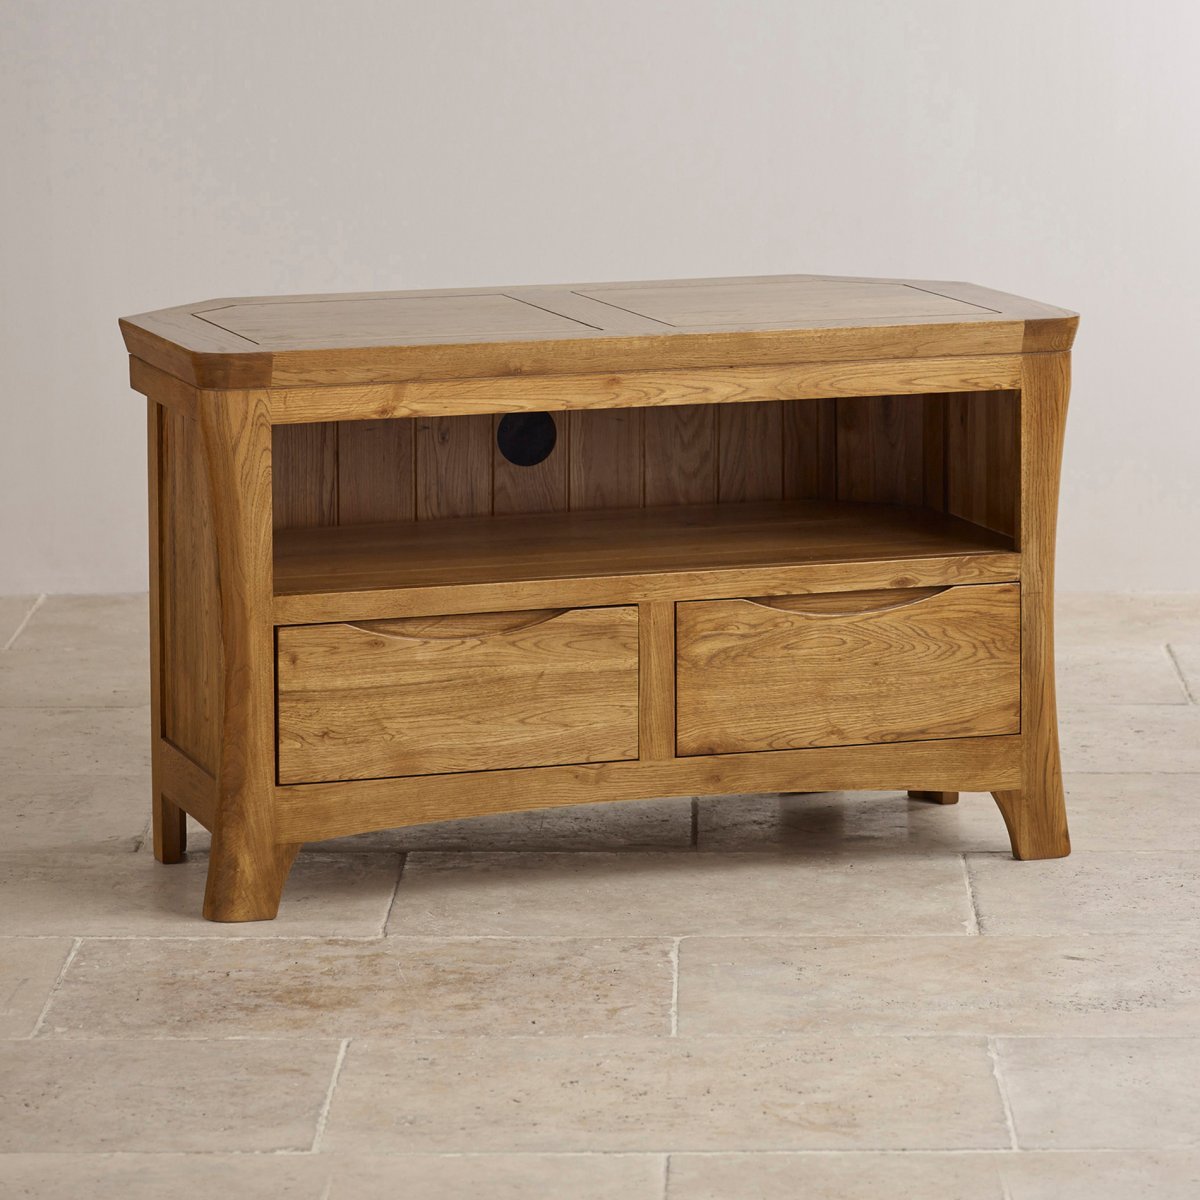 Orrick corner tv cabinet in rustic oak oak furniture land for Oak furniture land